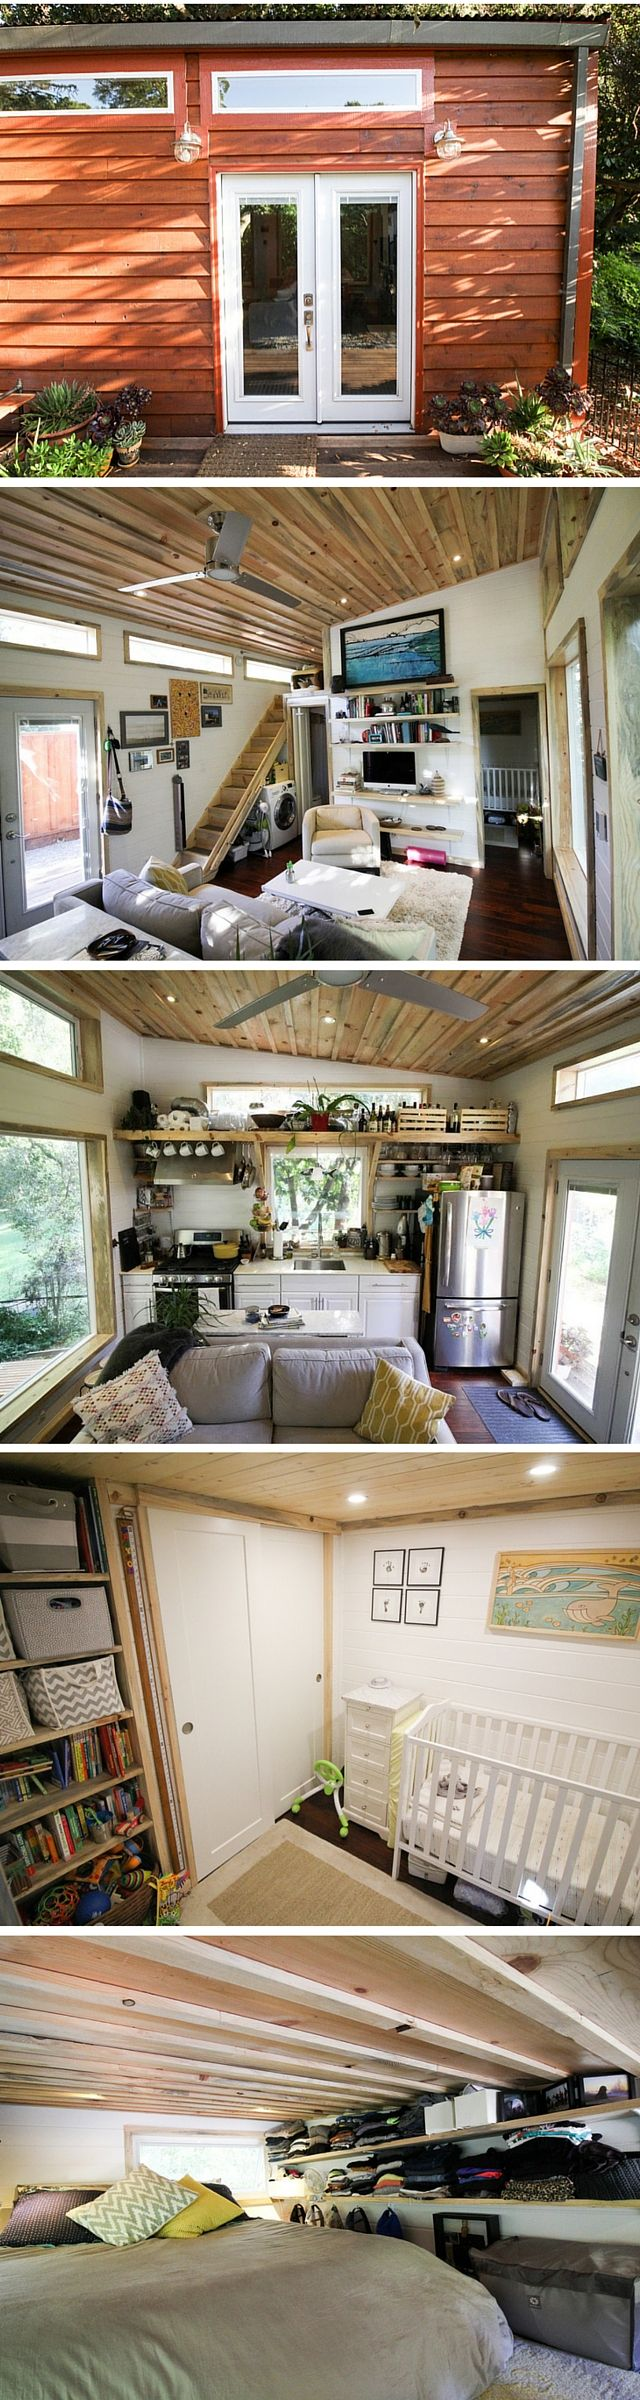 Bedroom tiny home plans on wheels furthermore romeo 500 sq ft log - Bedroom Tiny Home Plans On Wheels Furthermore Romeo 500 Sq Ft Log A 400 Sq Download